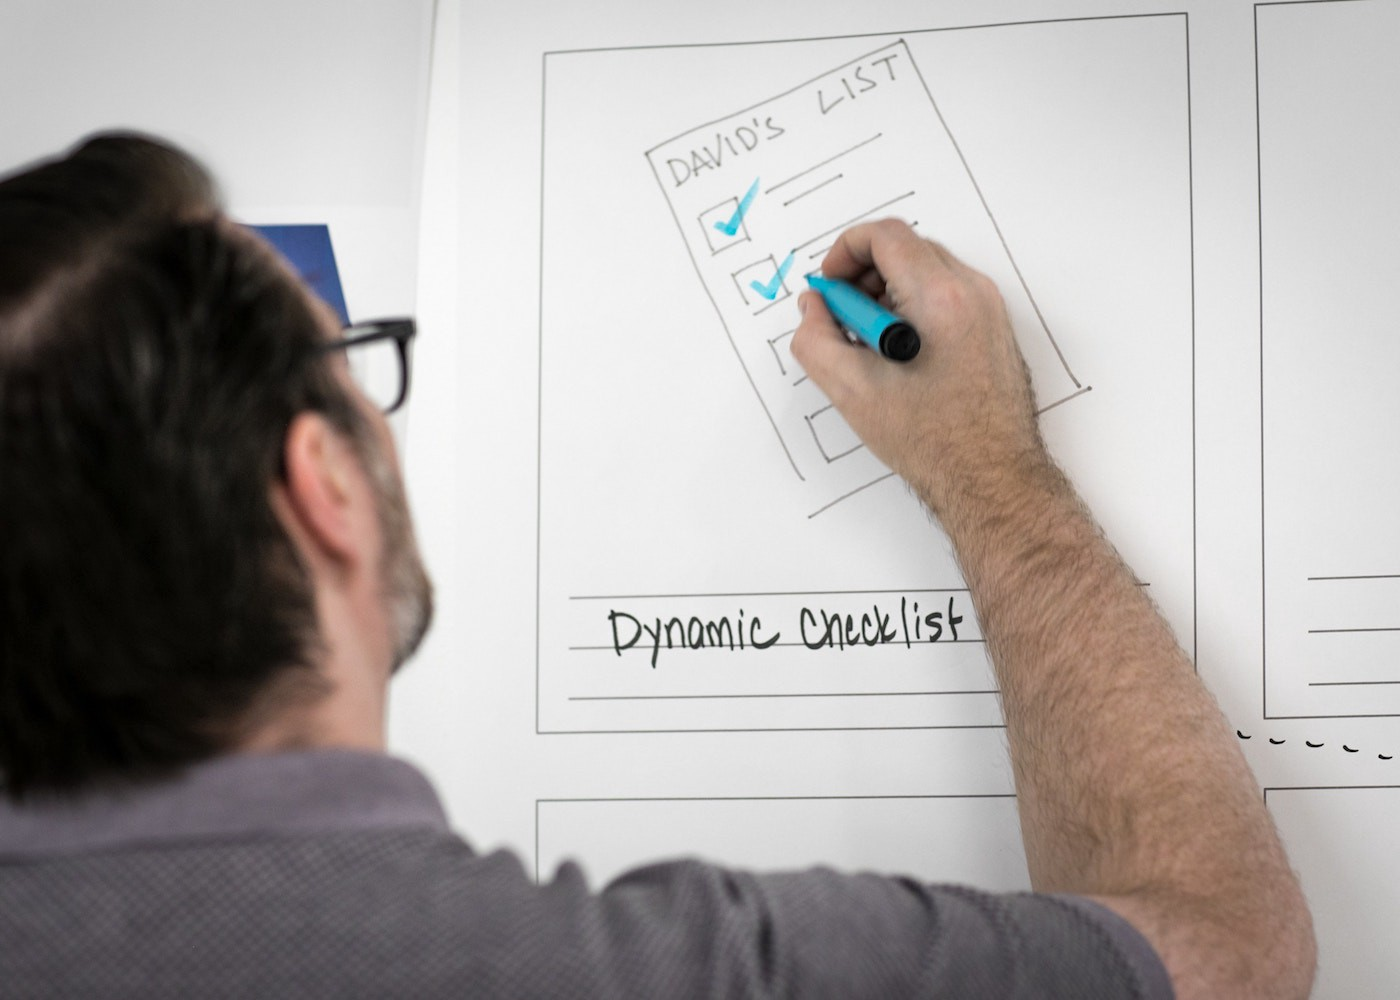 UI/UX sketching techniques 101 - UX Collective